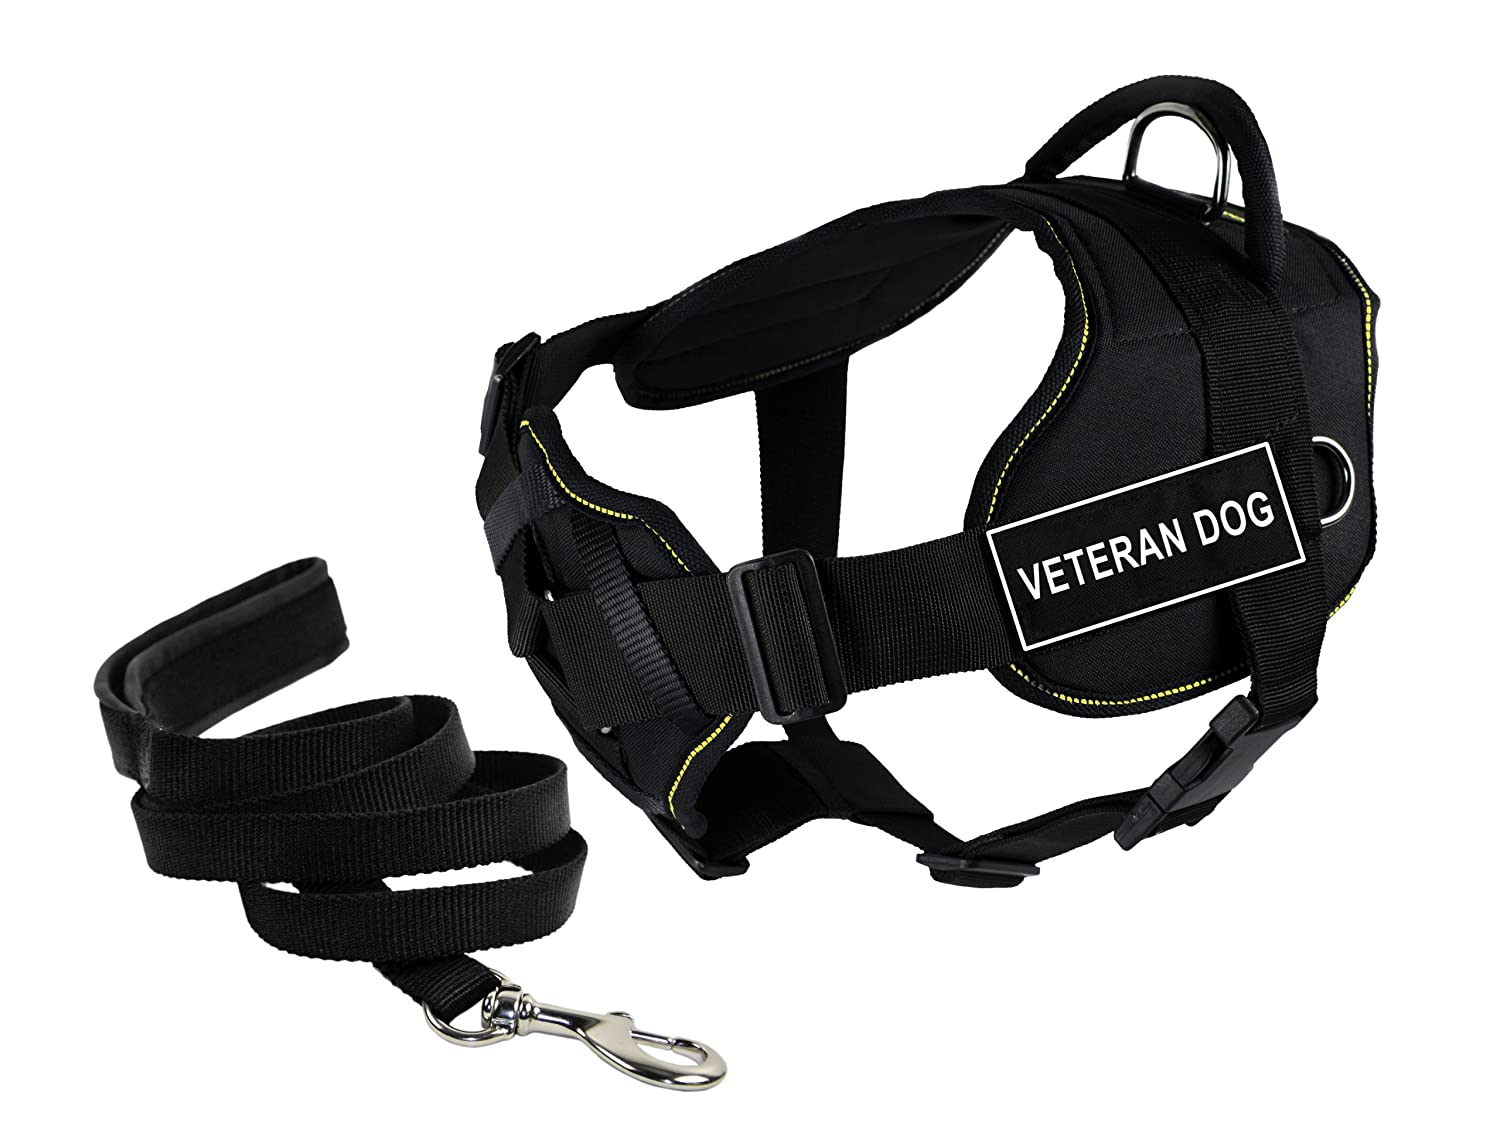 Dean & Tyler's DT Fun Chest Support VETERAN DOG Harness, Large, with 6 ft Padded Puppy Leash.